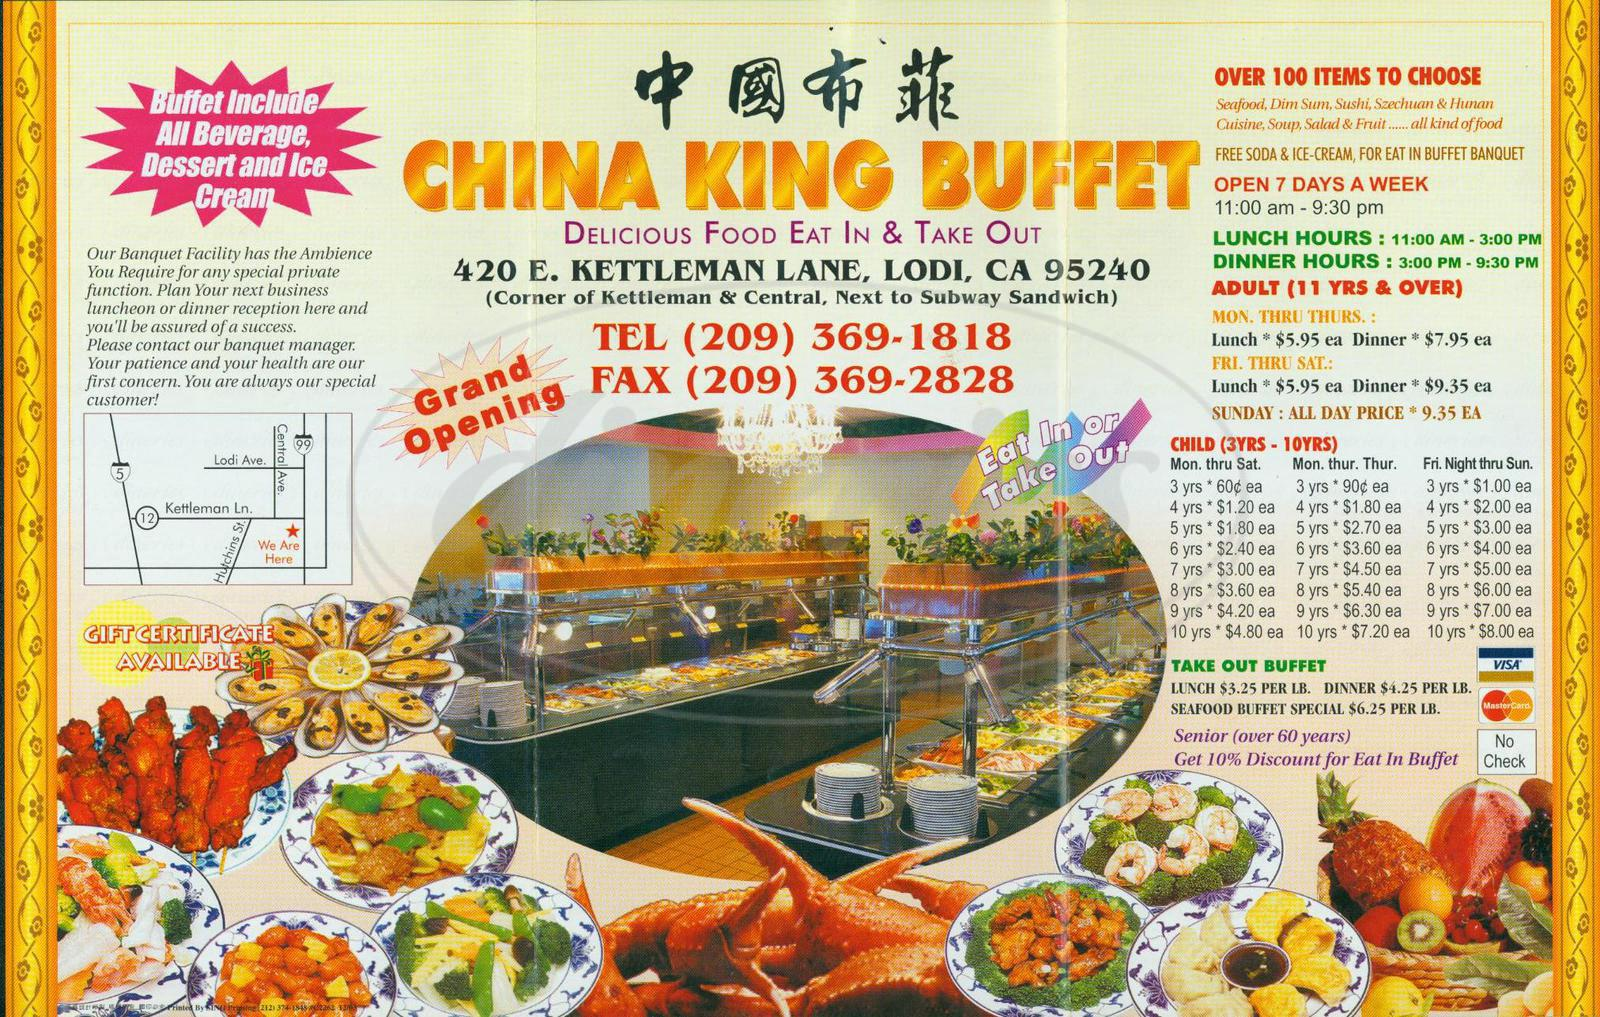 menu for China King Buffet